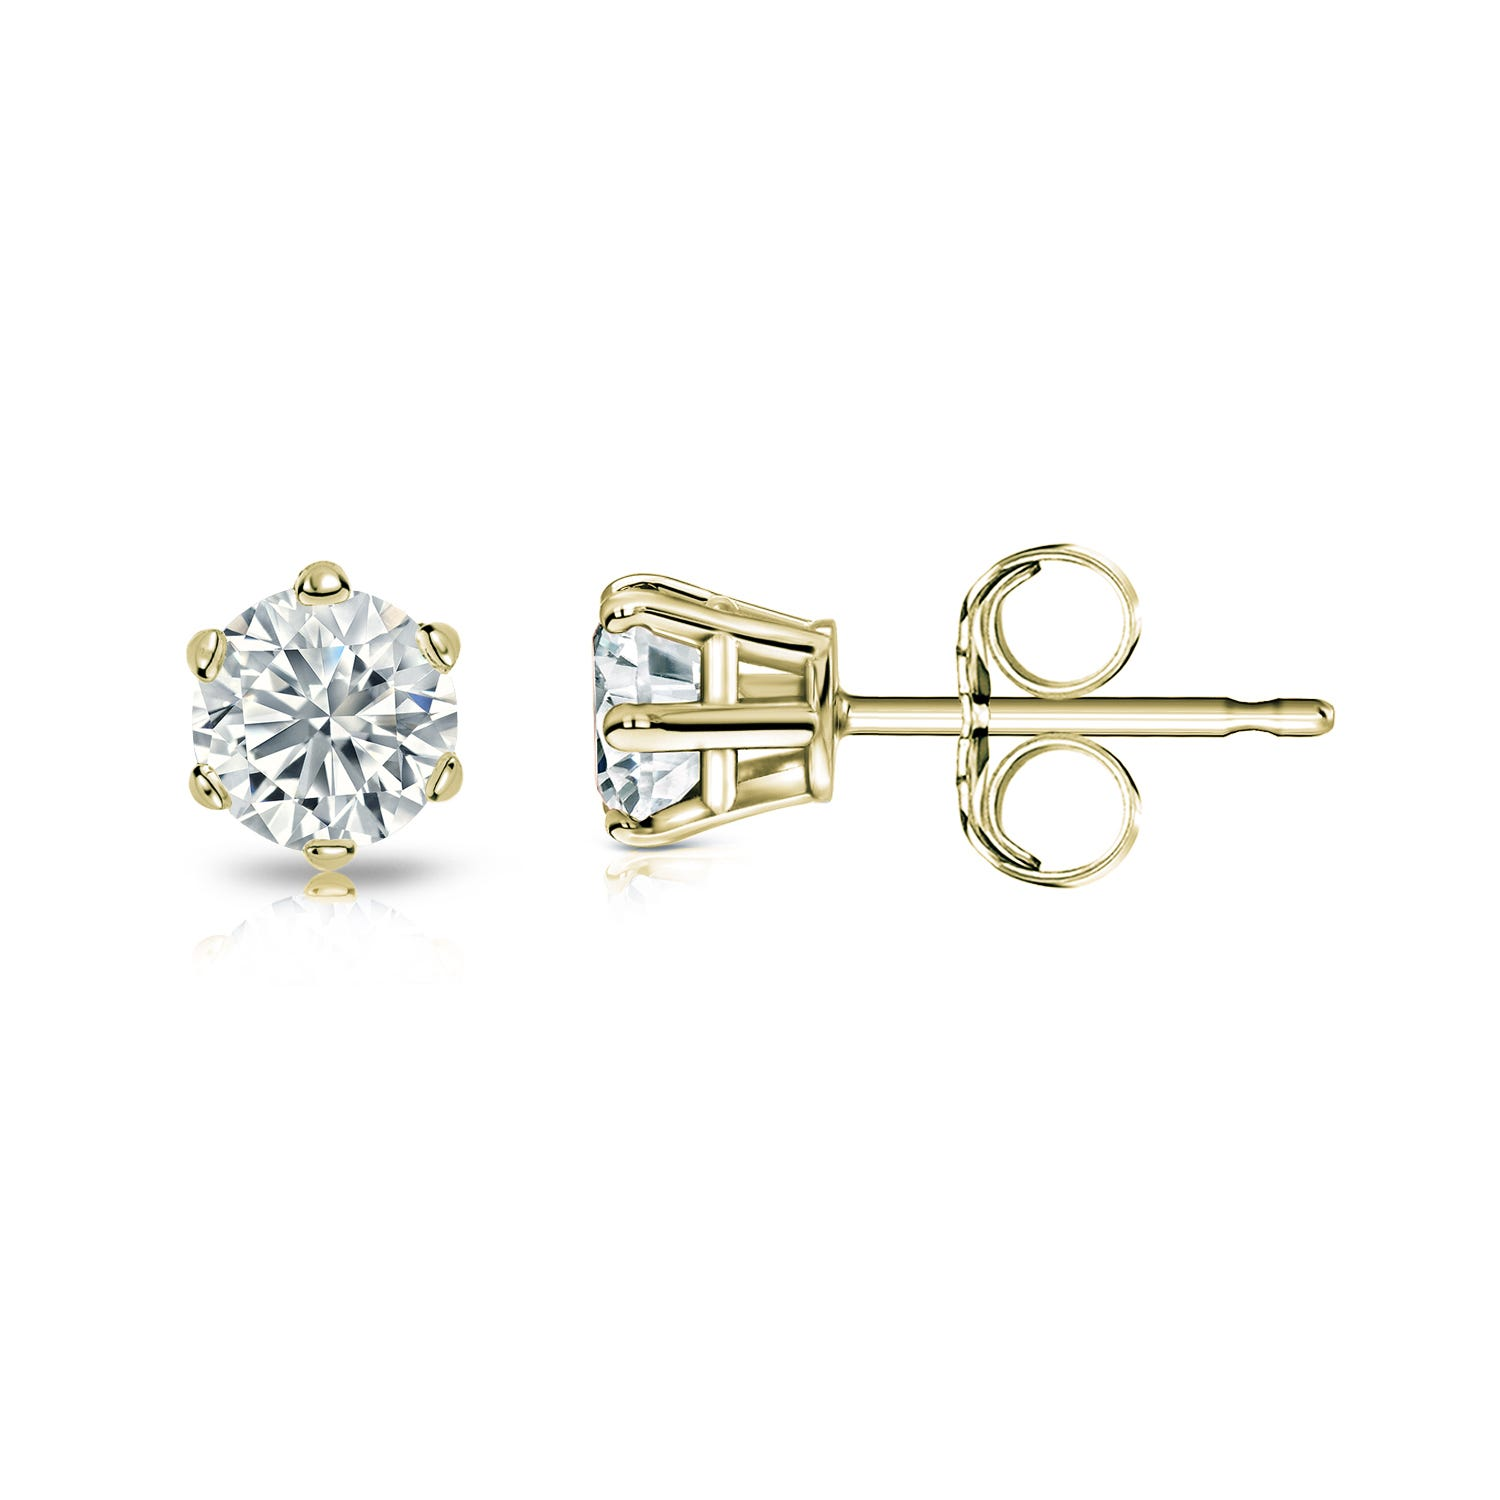 Round Diamond 1/10ctw. (IJ-I2) Solitaire Stud 6-Prong Earrings in 14K Yellow Gold